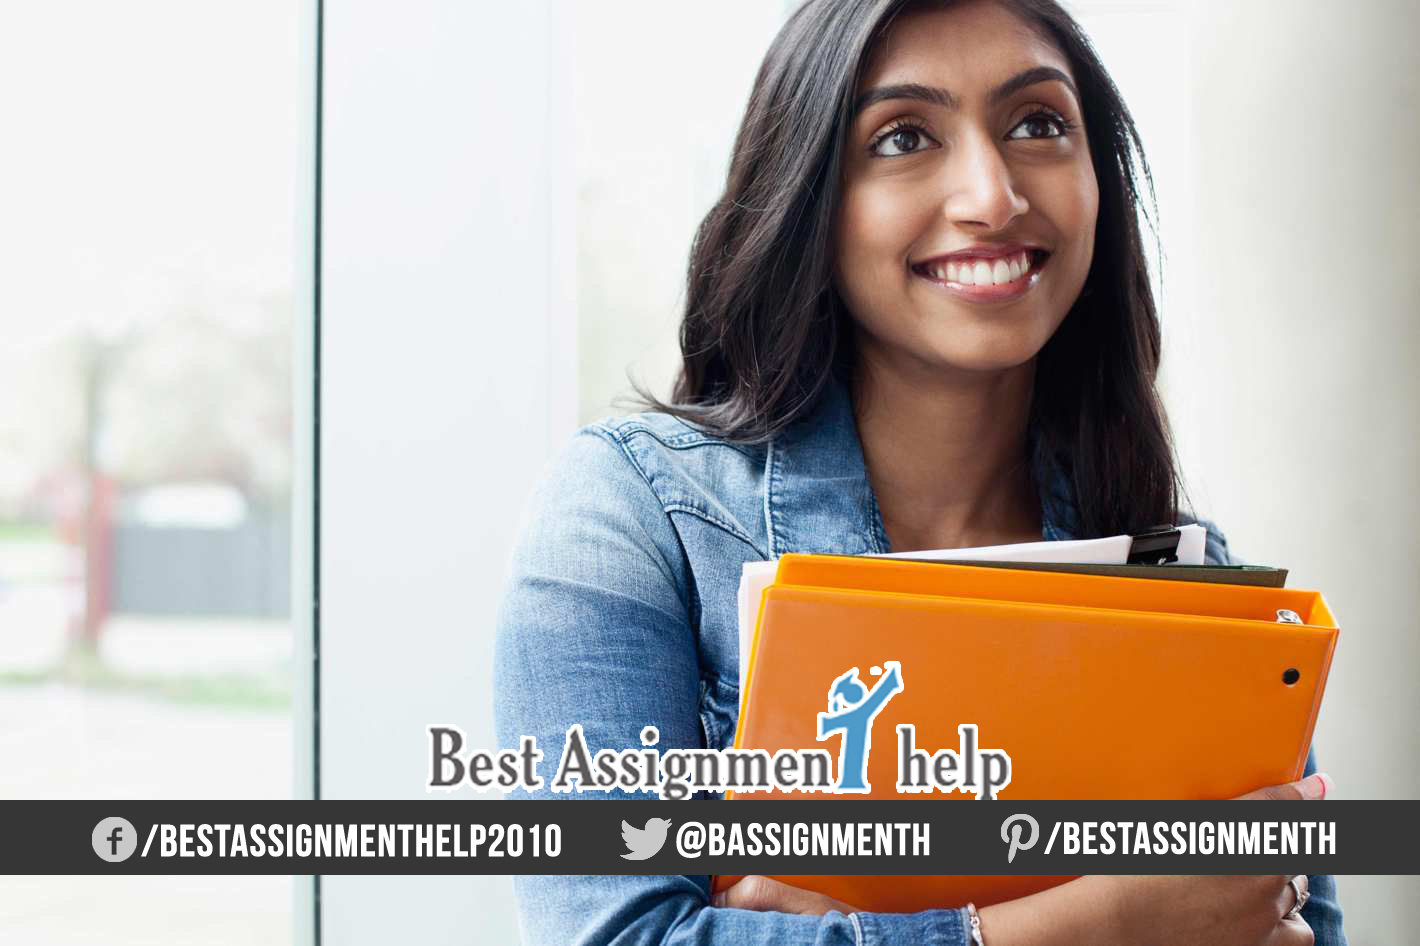 UNBEATABLE ACADEMIC ASSISTANCE SERVICES